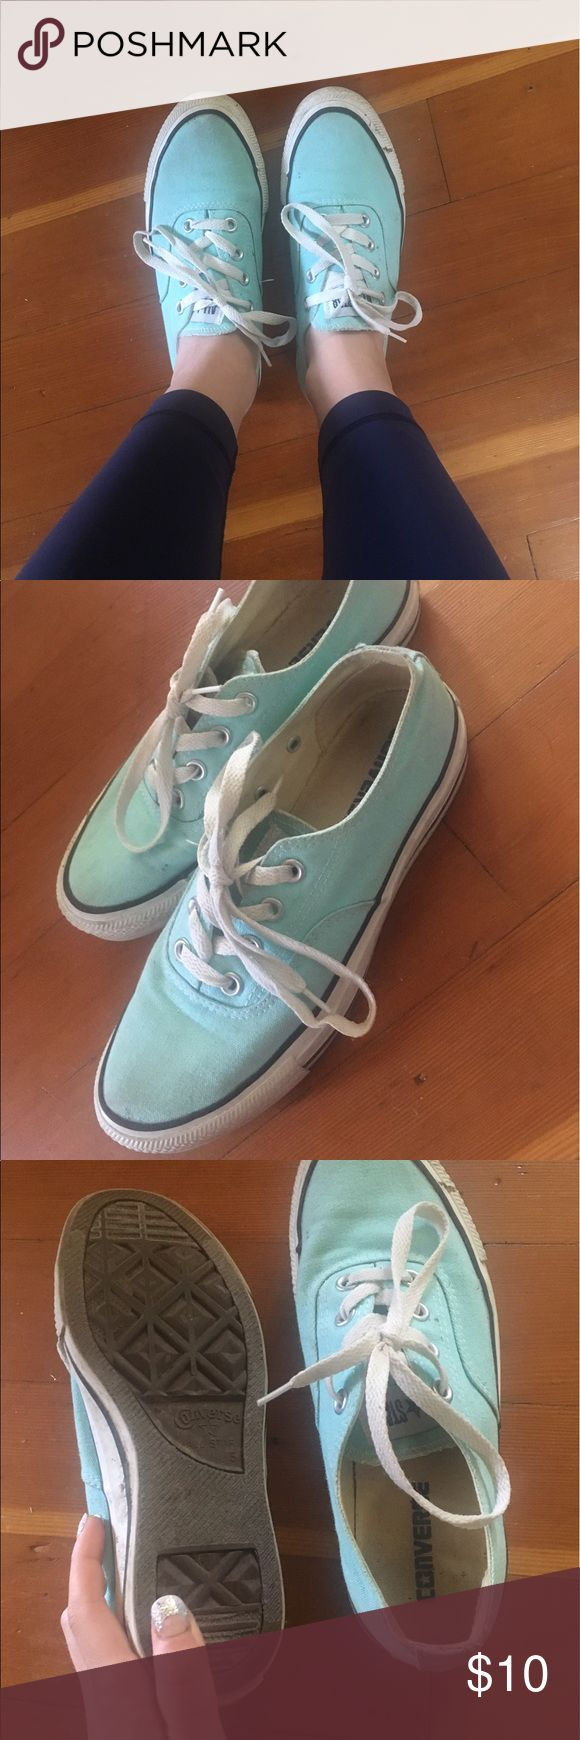 Teal Vans Style Converse Great condition. Could use a little wash but I only wore these a couple times. Converse Shoes Sneakers